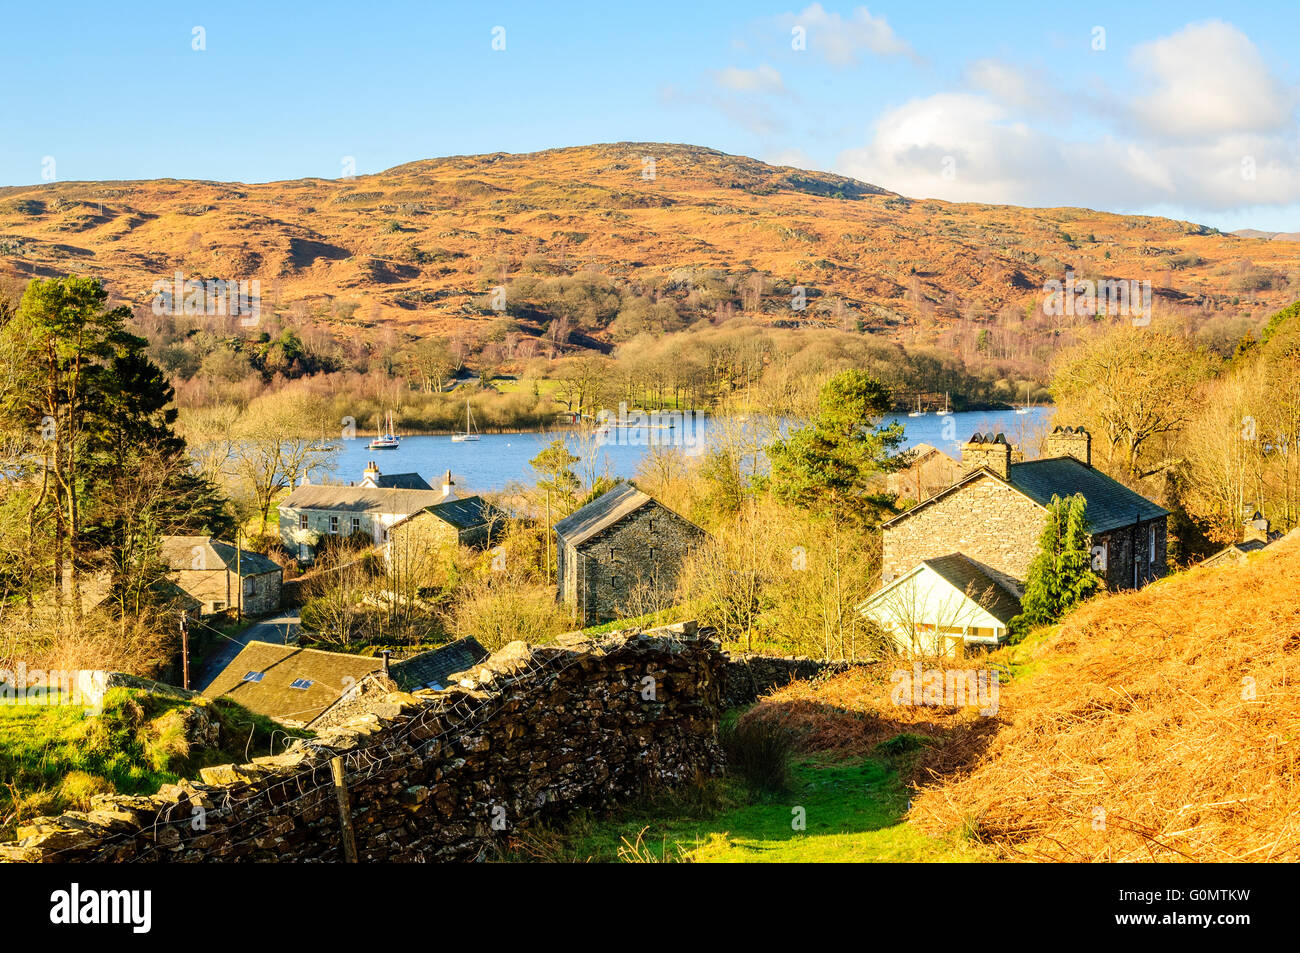 The hamlet of Nibthwaite beside Coniston Water. Swallows and Amazons author Arthur Ransome spent many childhood - Stock Image